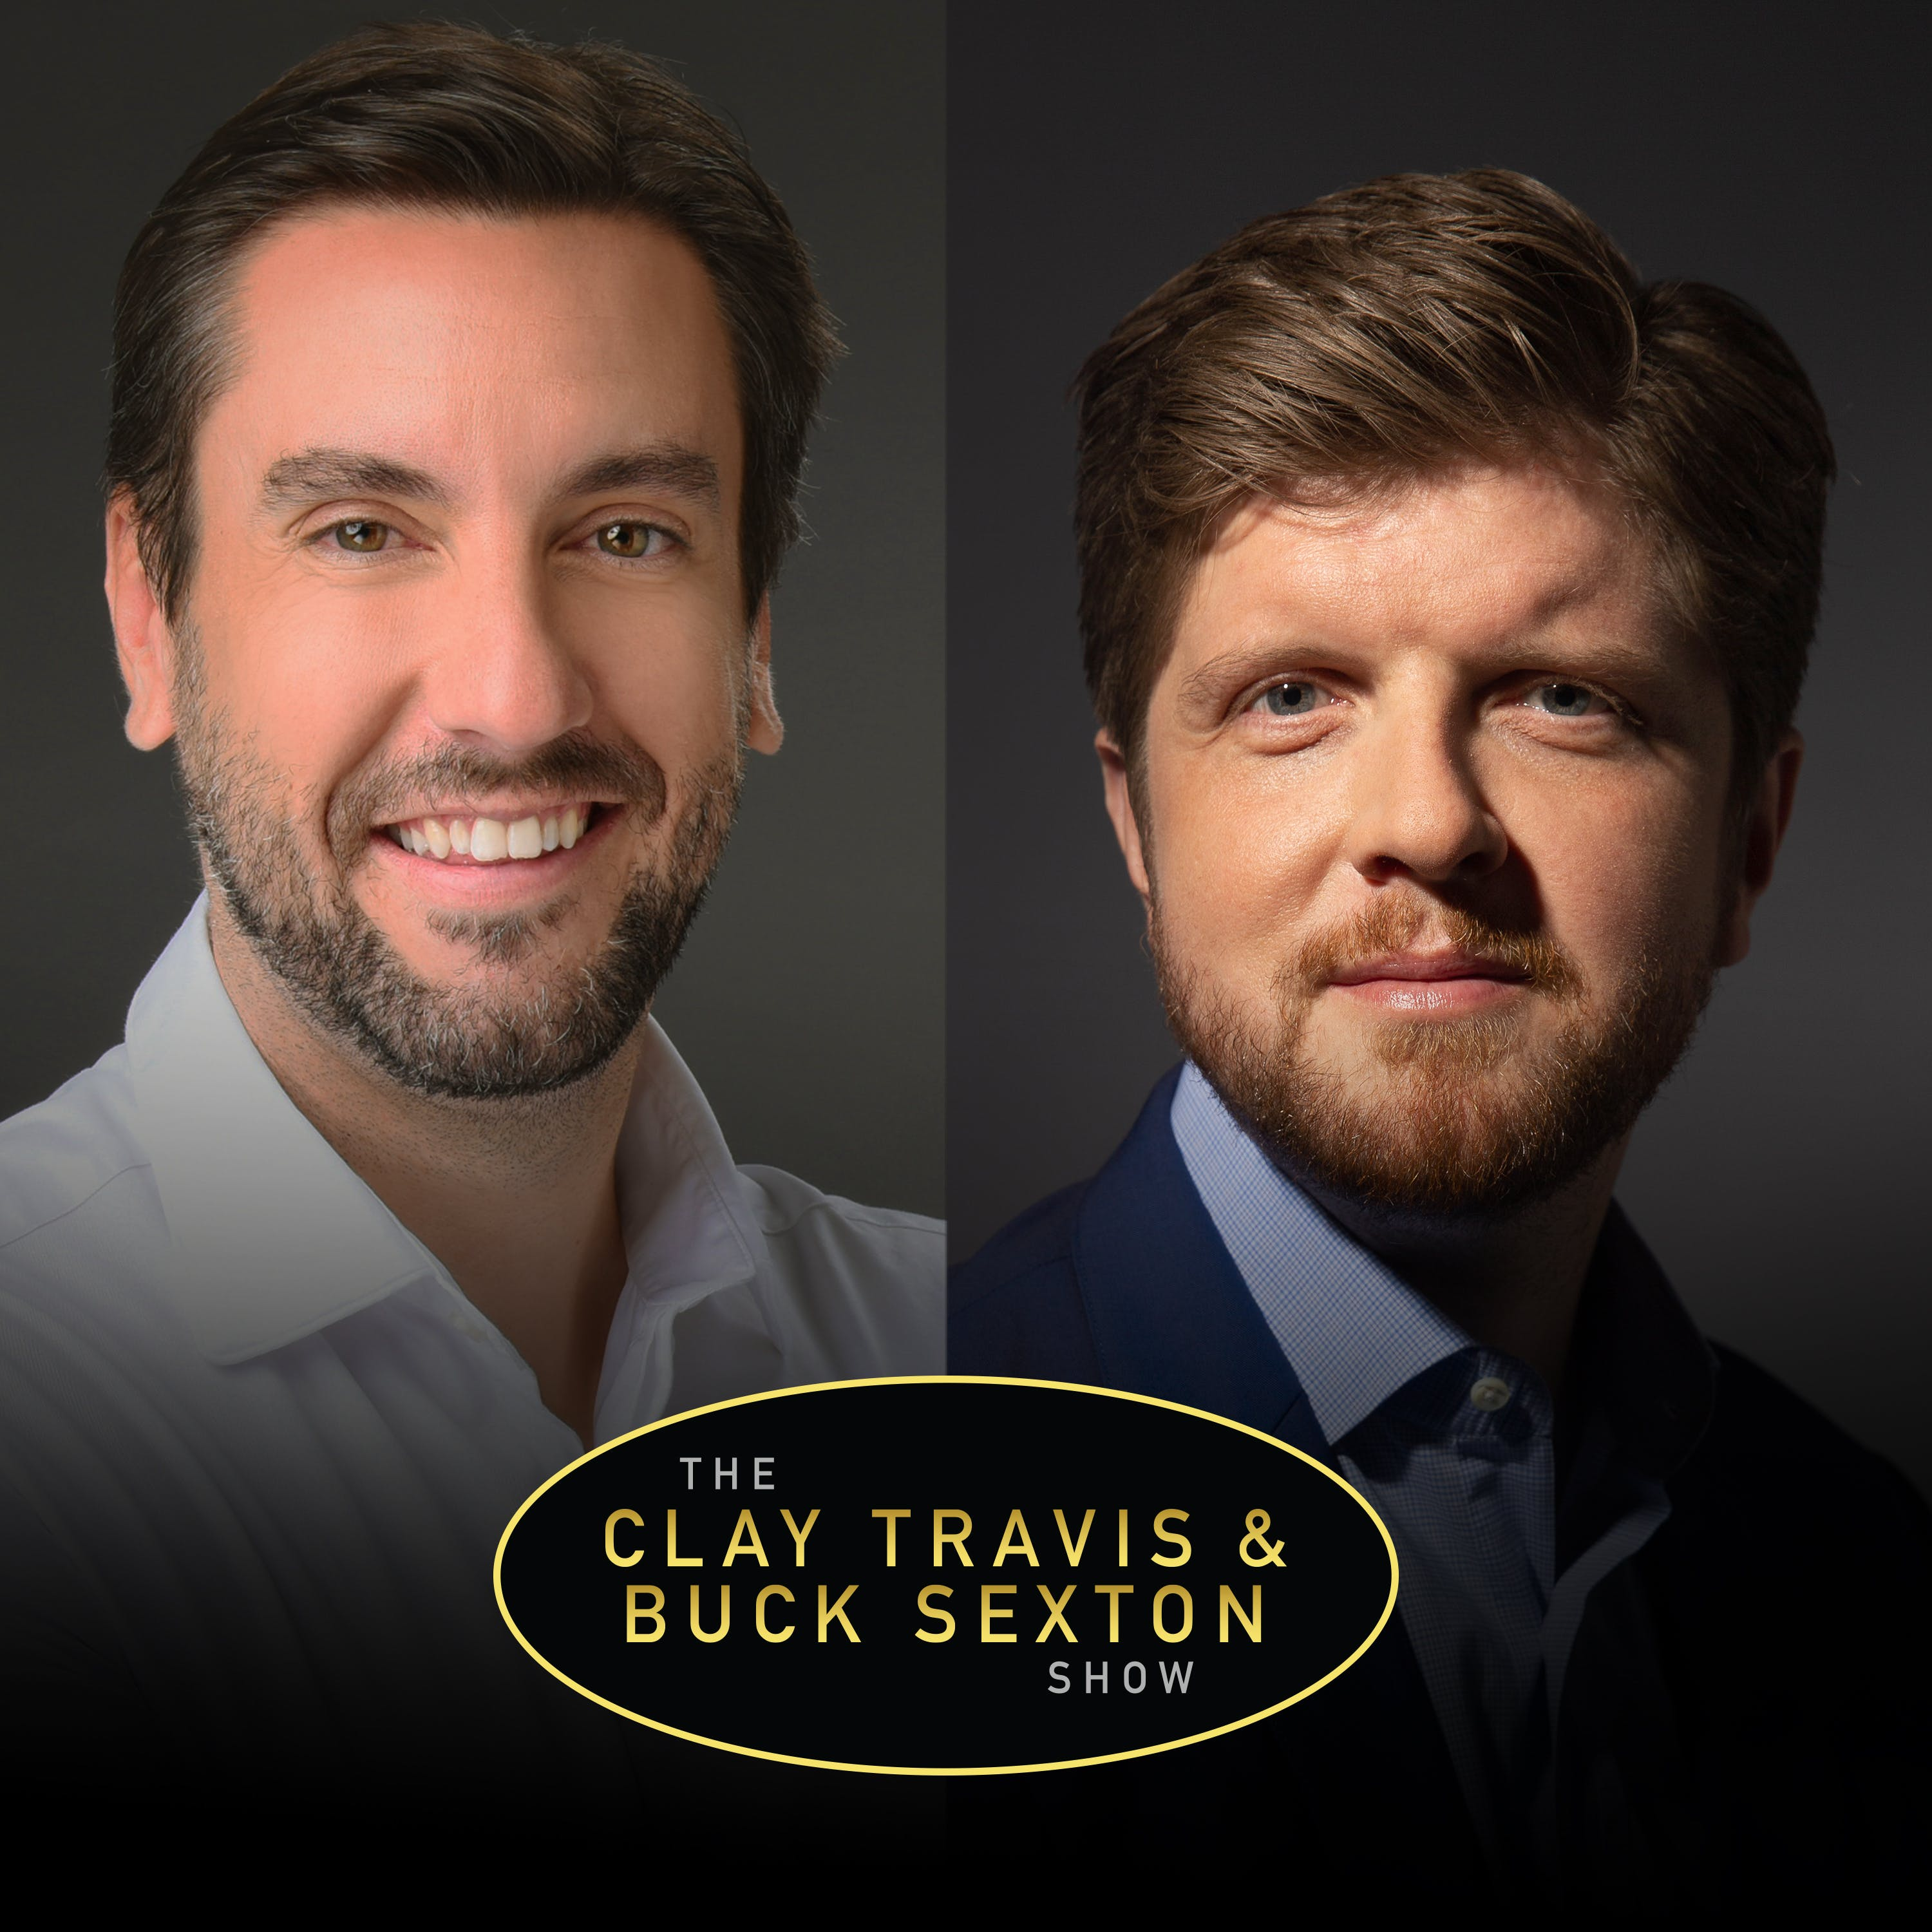 Clay Travis and Buck Sexton Show H1 – Jul 27 2021